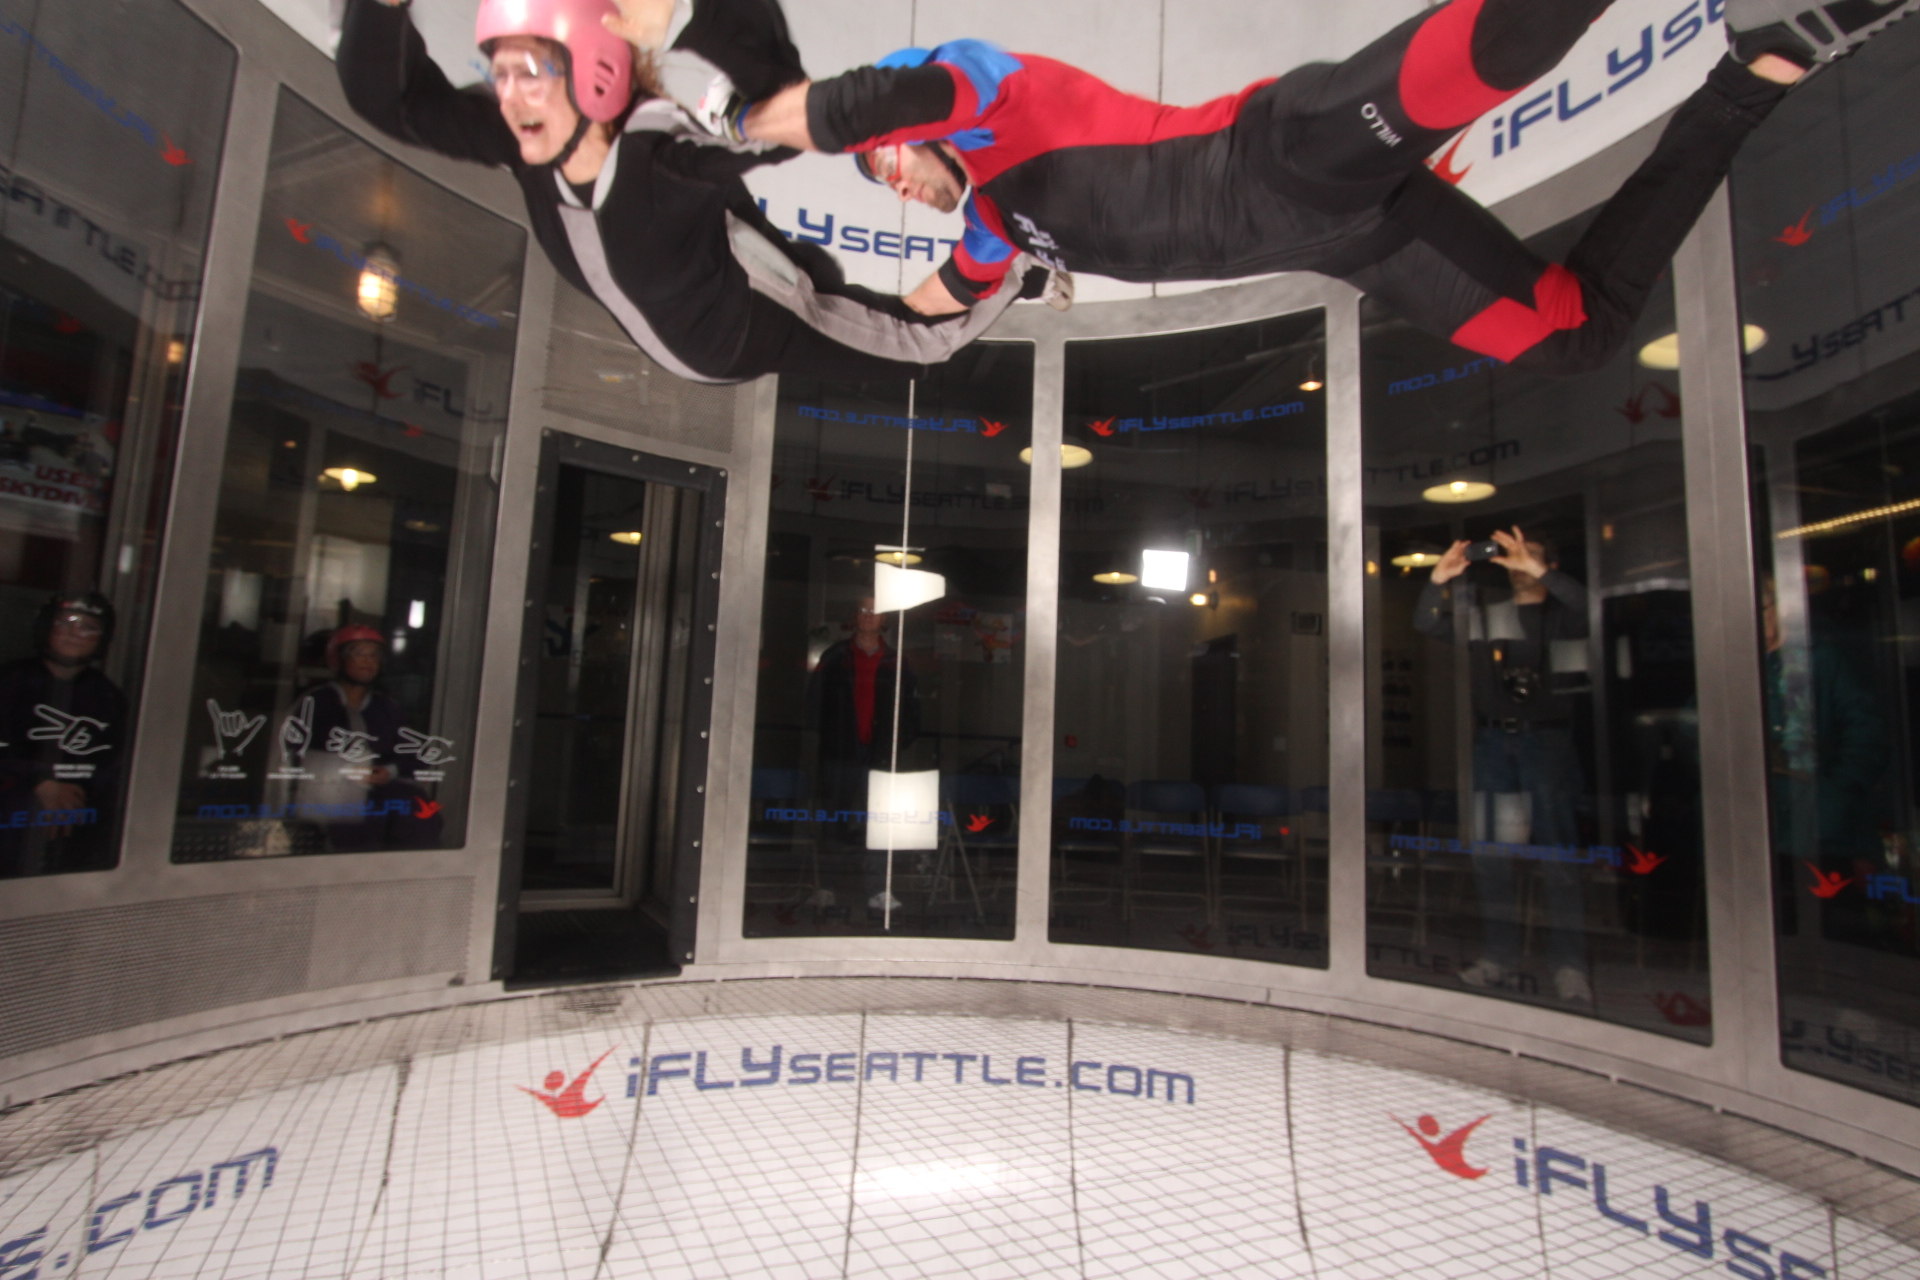 I believe I can fly — at iFly Seattle!